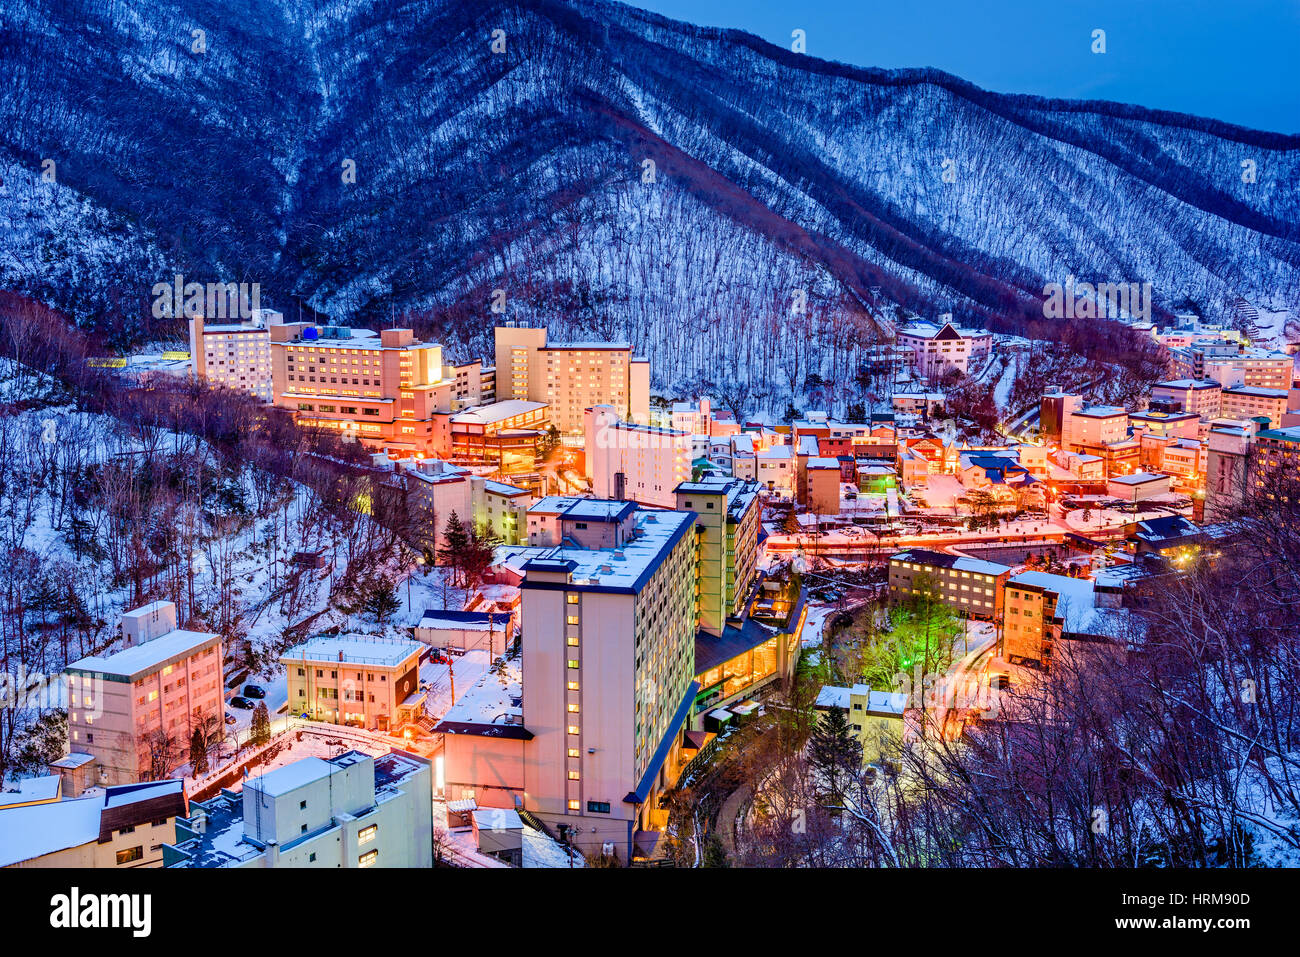 Noboribetsu, Japan hot springs town skyline. - Stock Image